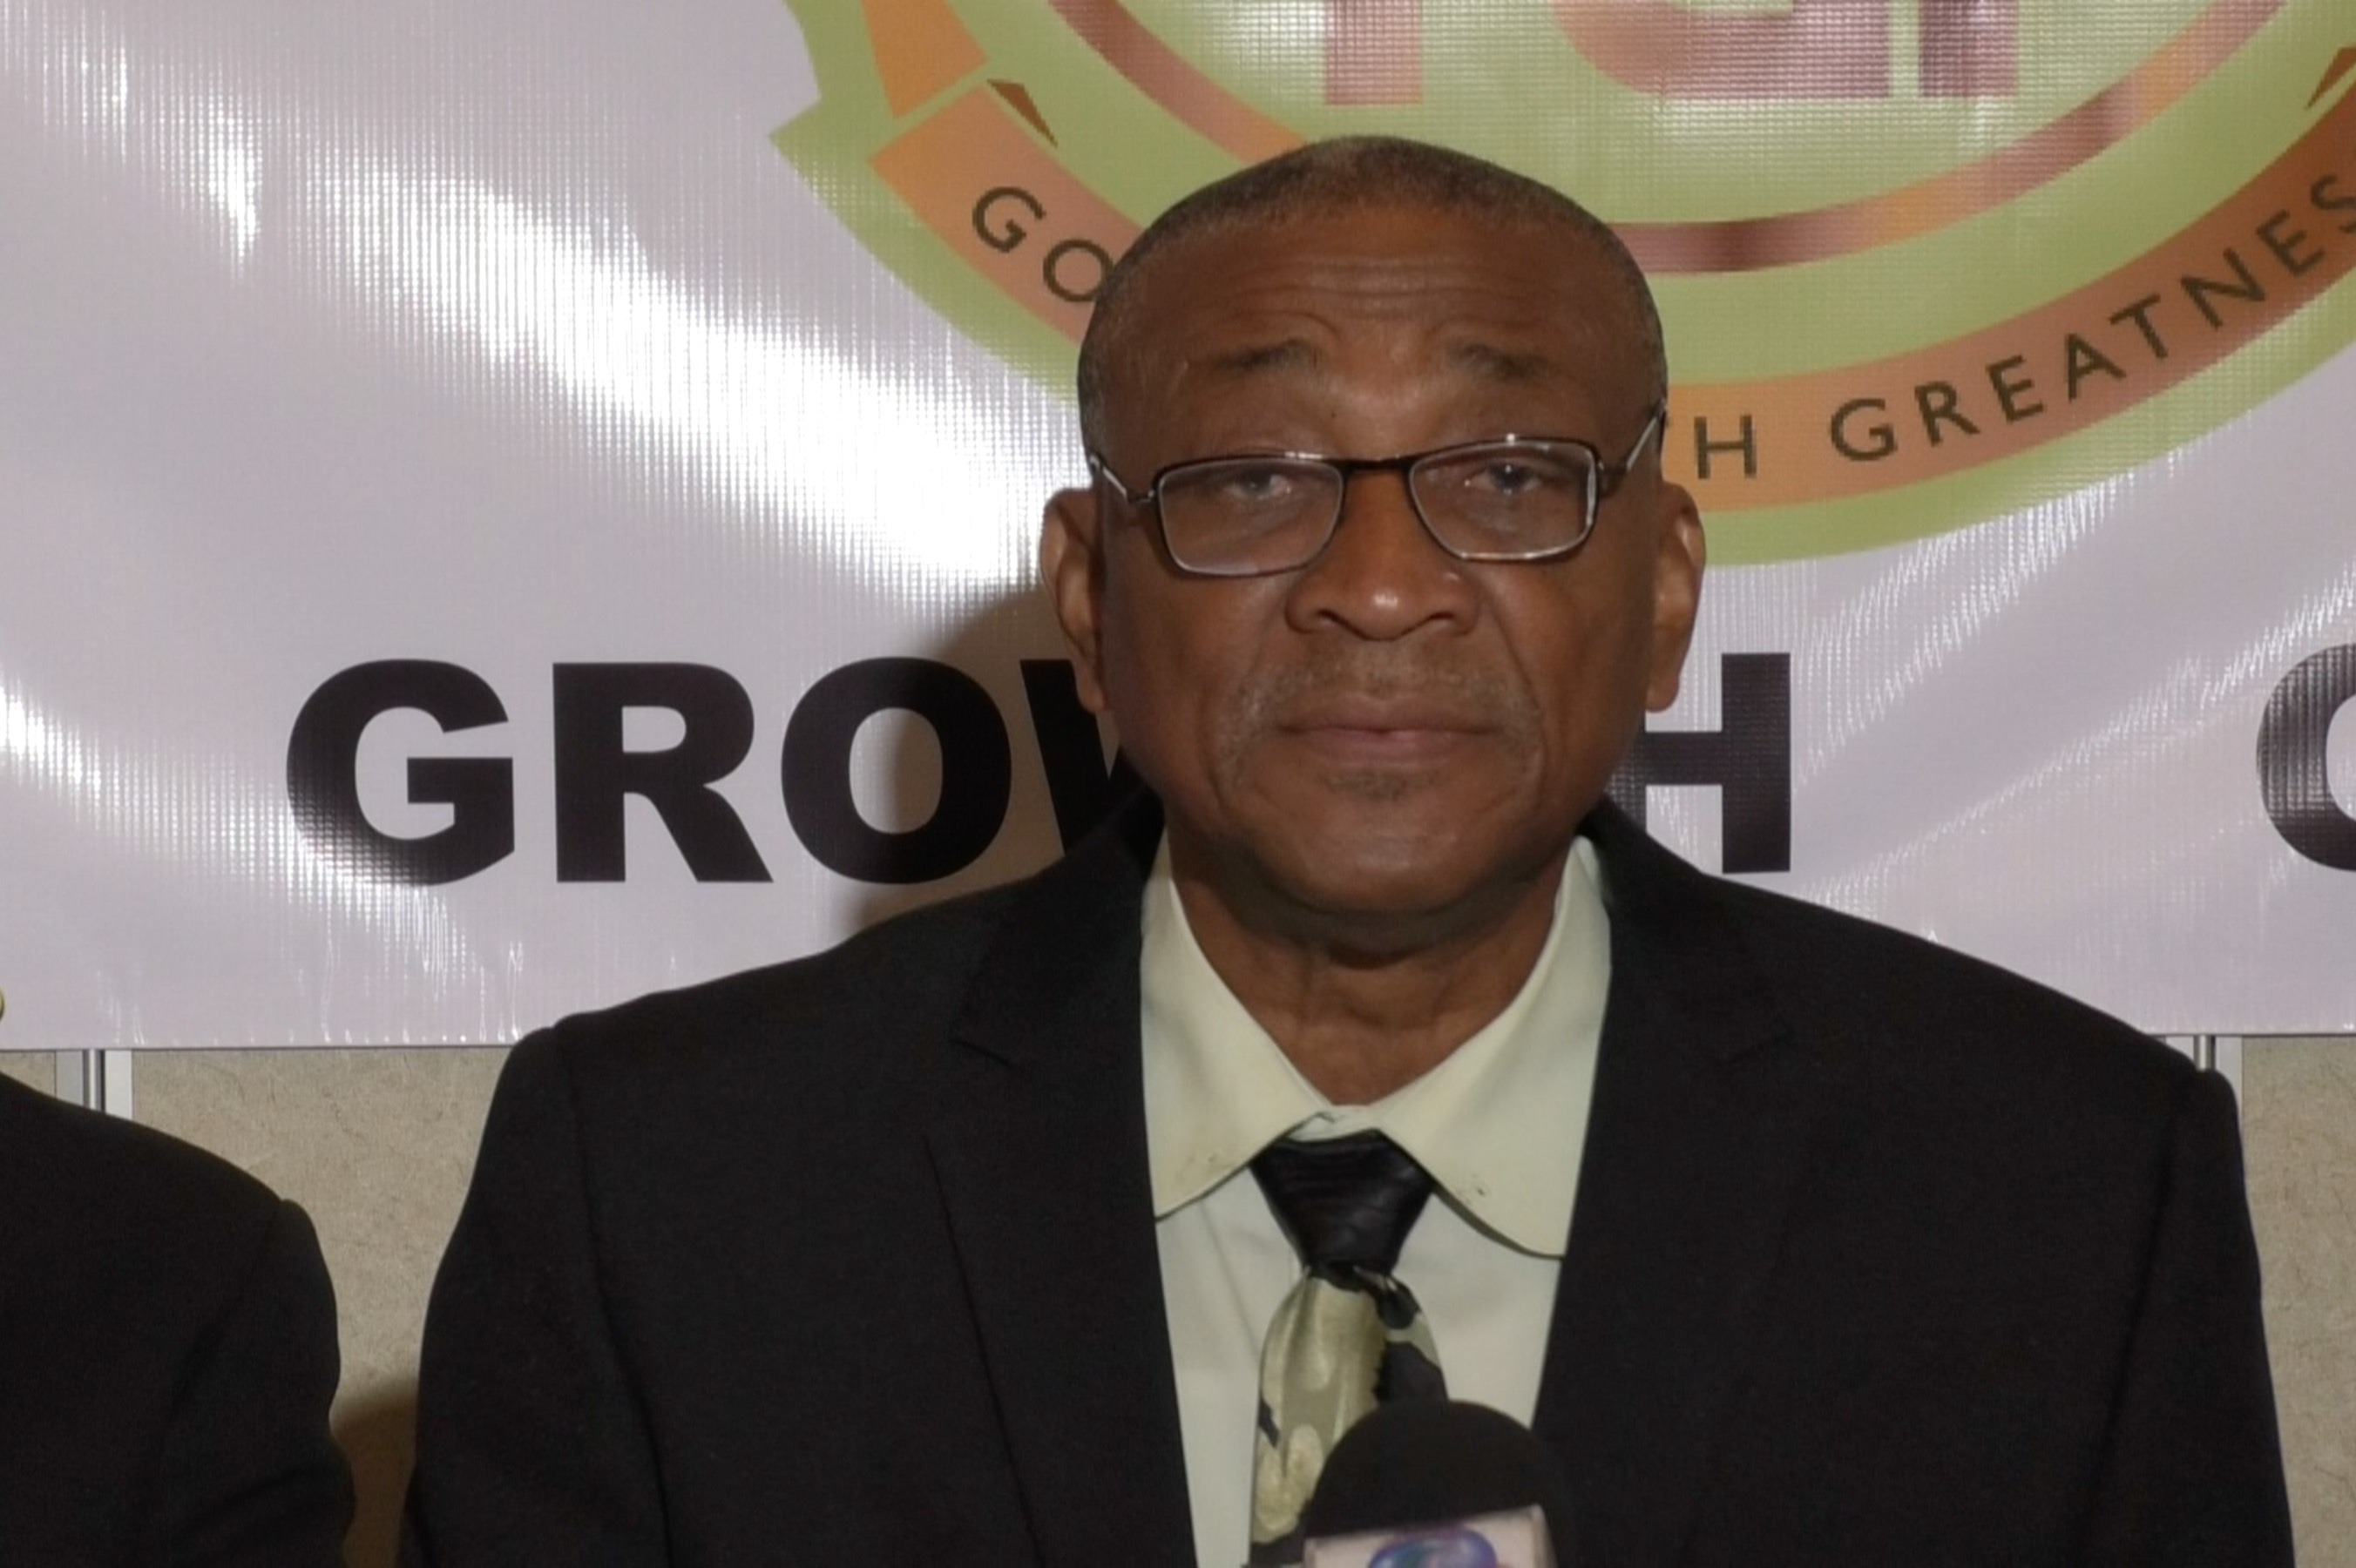 Opposition leader and President of the newly formed People's Party for Democracy and Development, Bishop Joseph Atherley